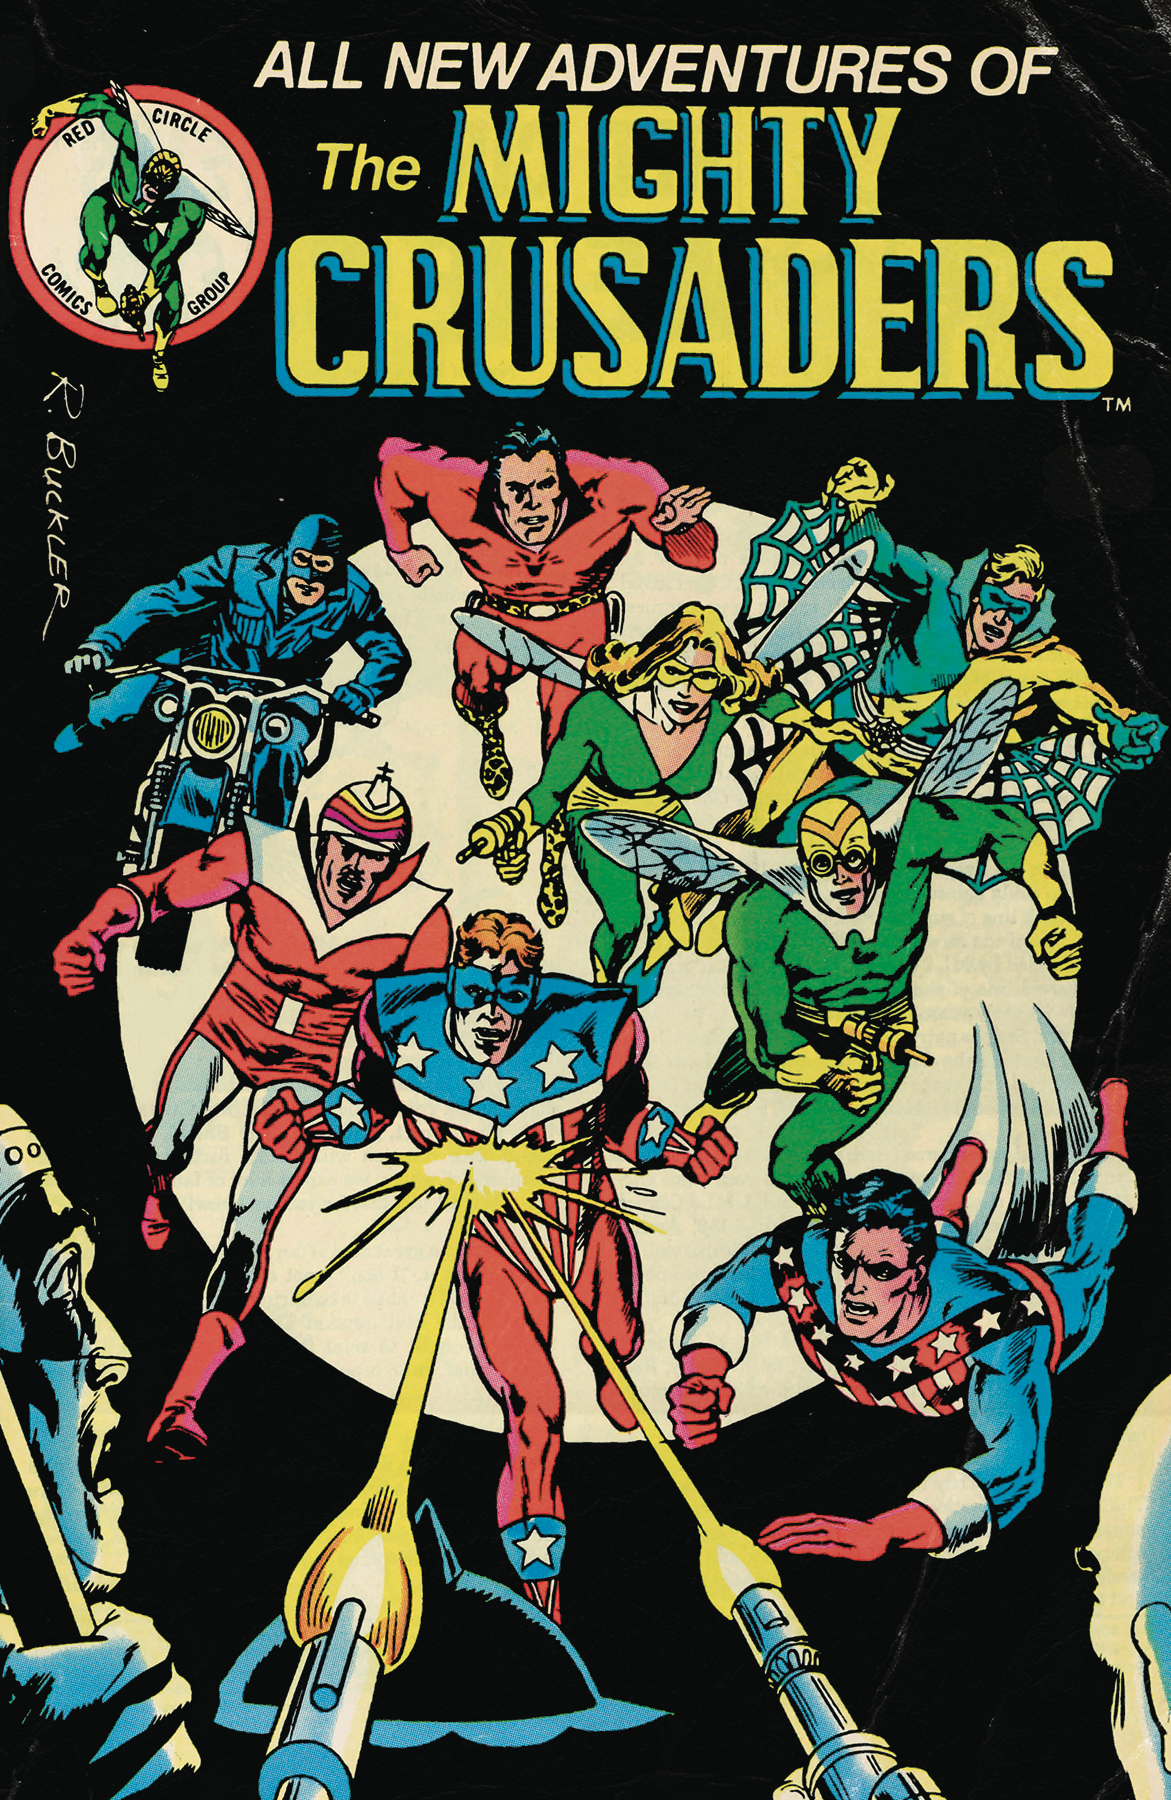 MIGHTY CRUSADERS #4 CVR B RED CIRCLE